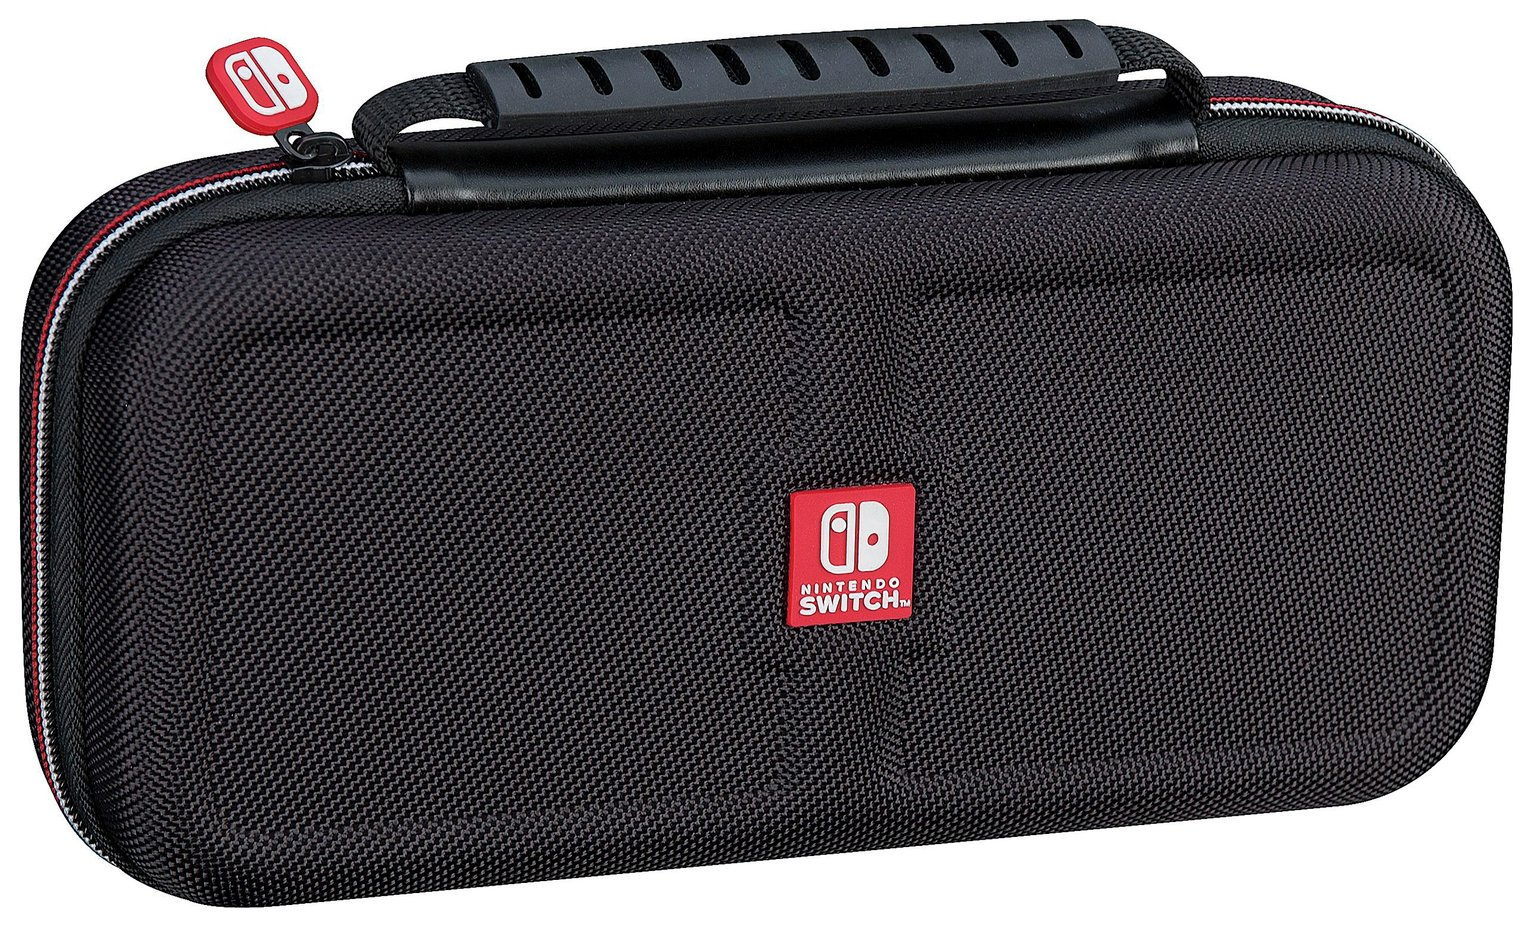 RDS Nintendo Switch Pouch from nintendo